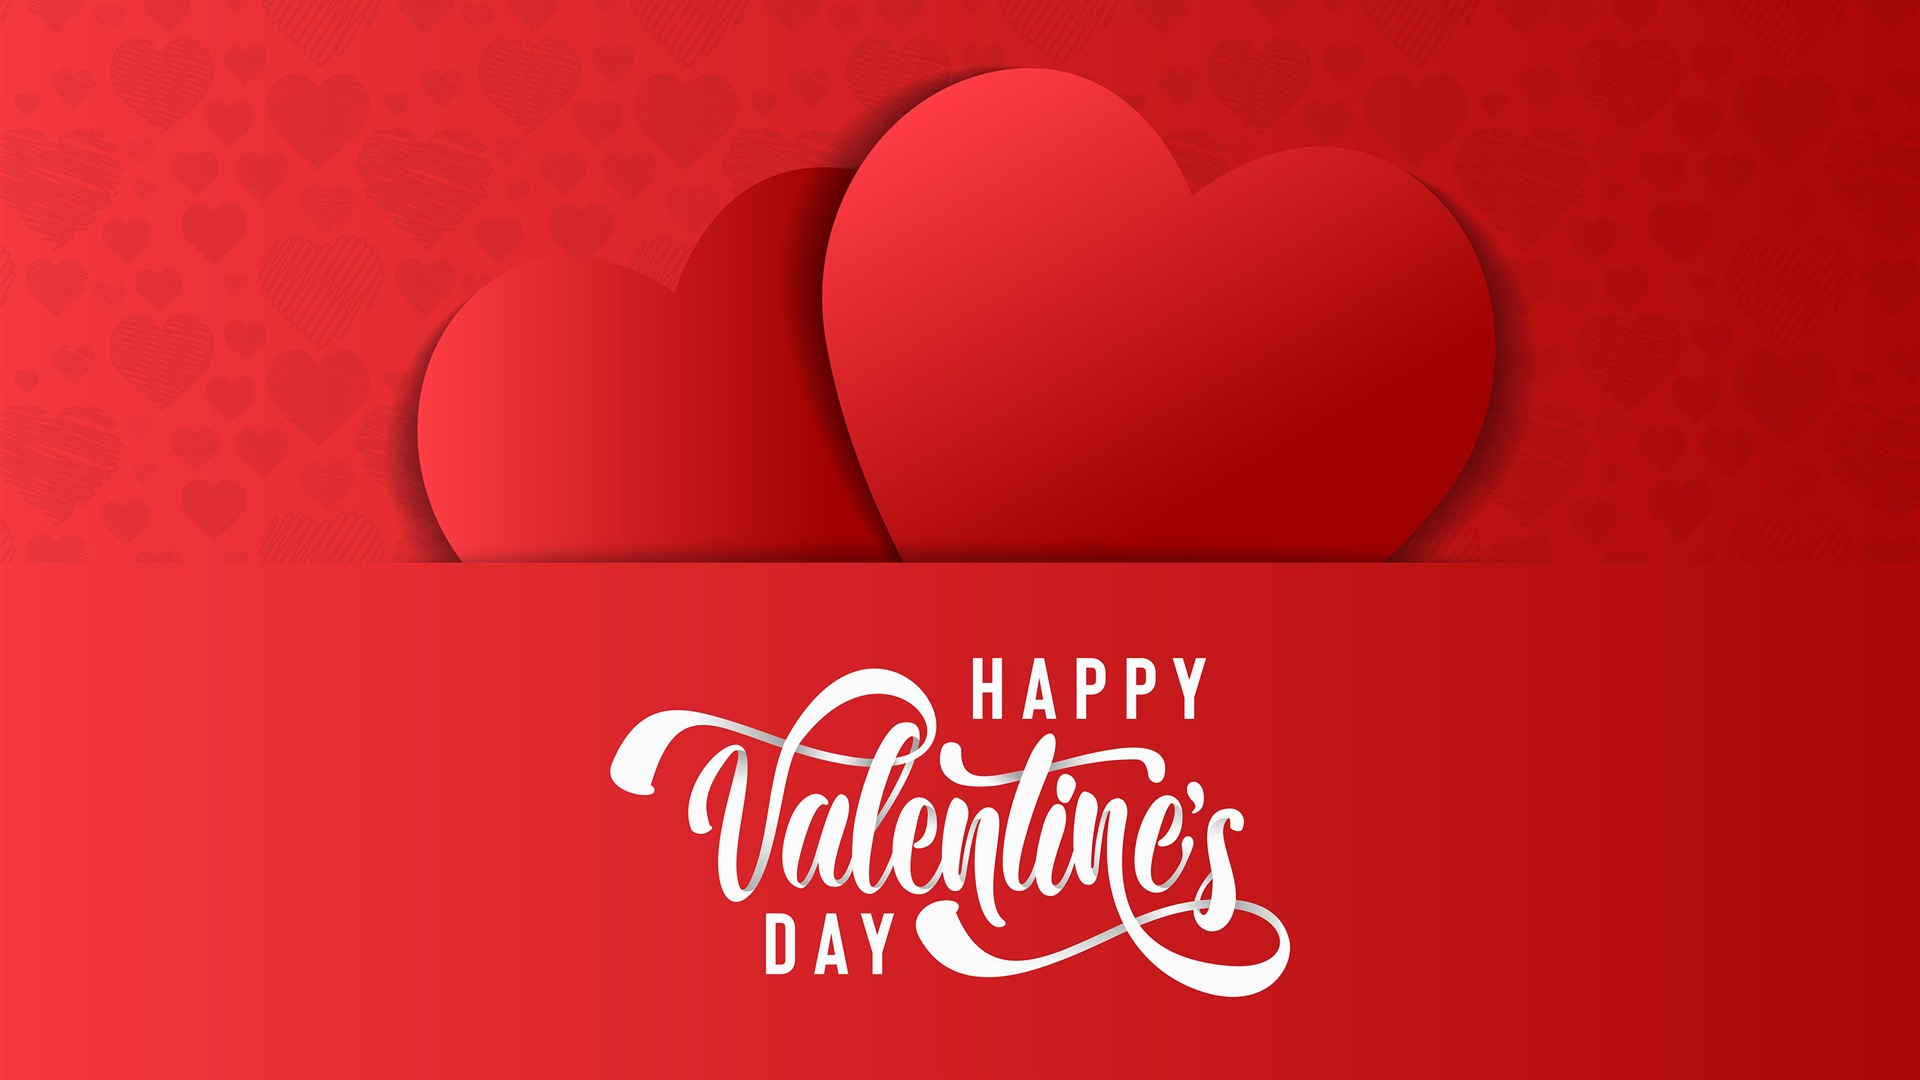 Happy Valentines Day Wallpaper 1920x1080